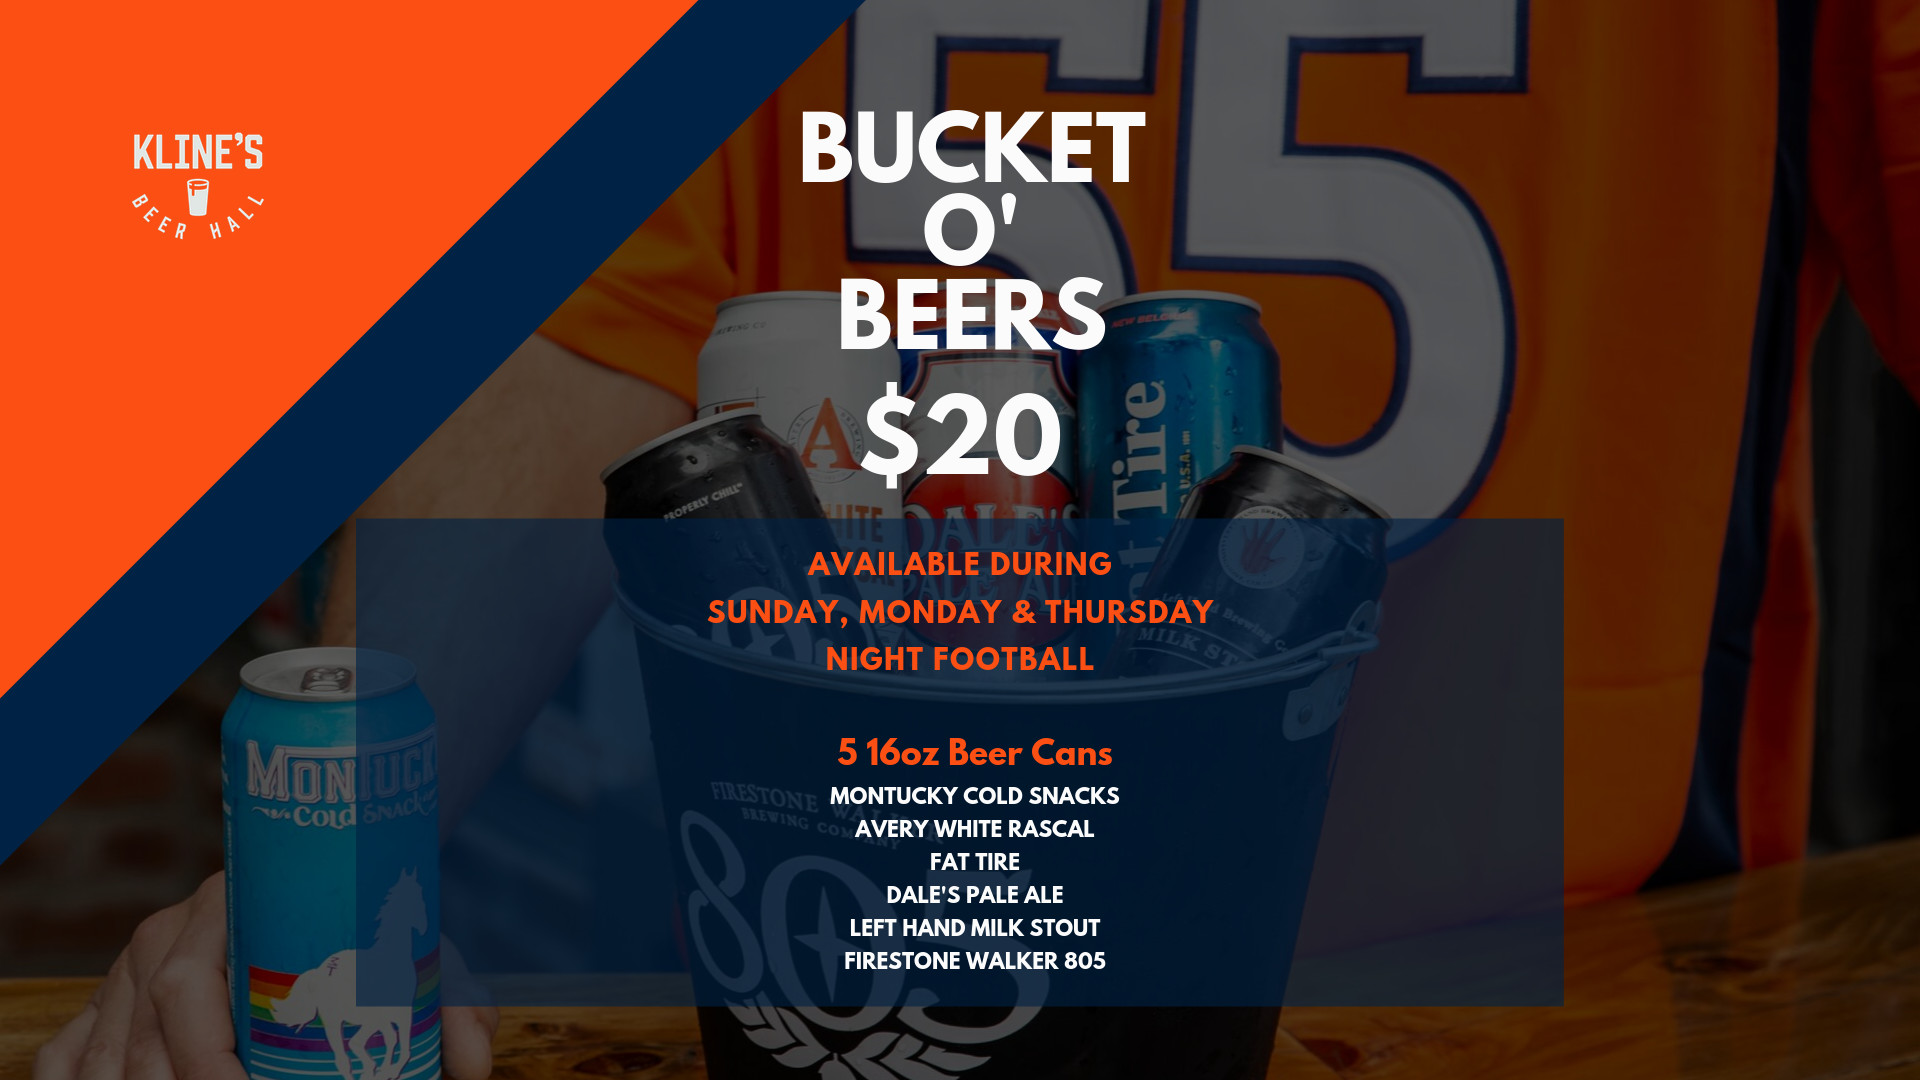 Football Happy Hour $20 Bucket O' Beers